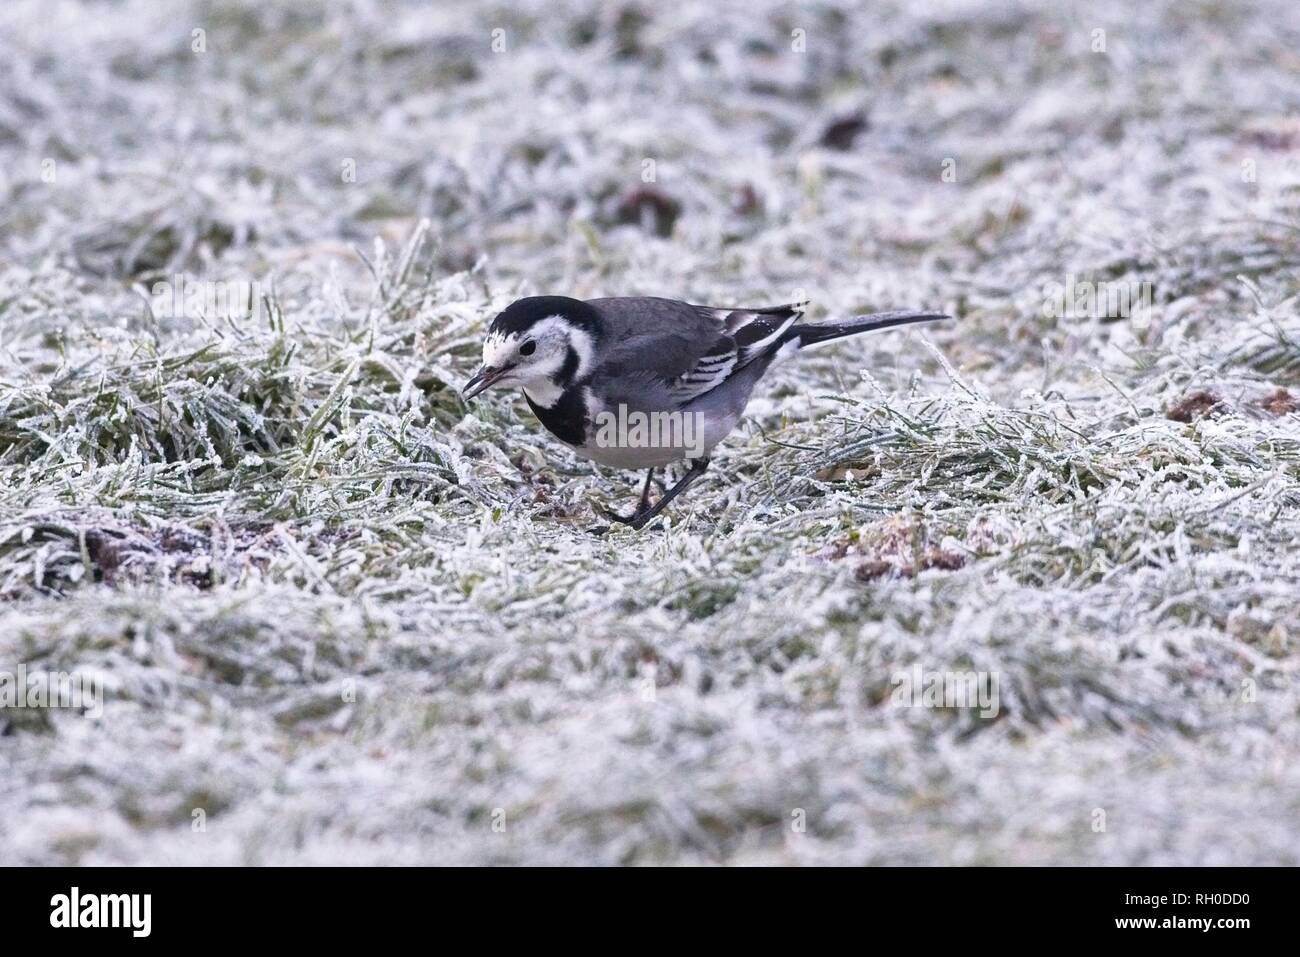 Hailsham, UK. 31st Jan, 2019. UK weather.A Pied wagtail (Motacilla alba) struggles to find food this morning after a hard overnight frost in Hailsham, East Sussex, UK. Credit: Ed Brown/Alamy Live News - Stock Image